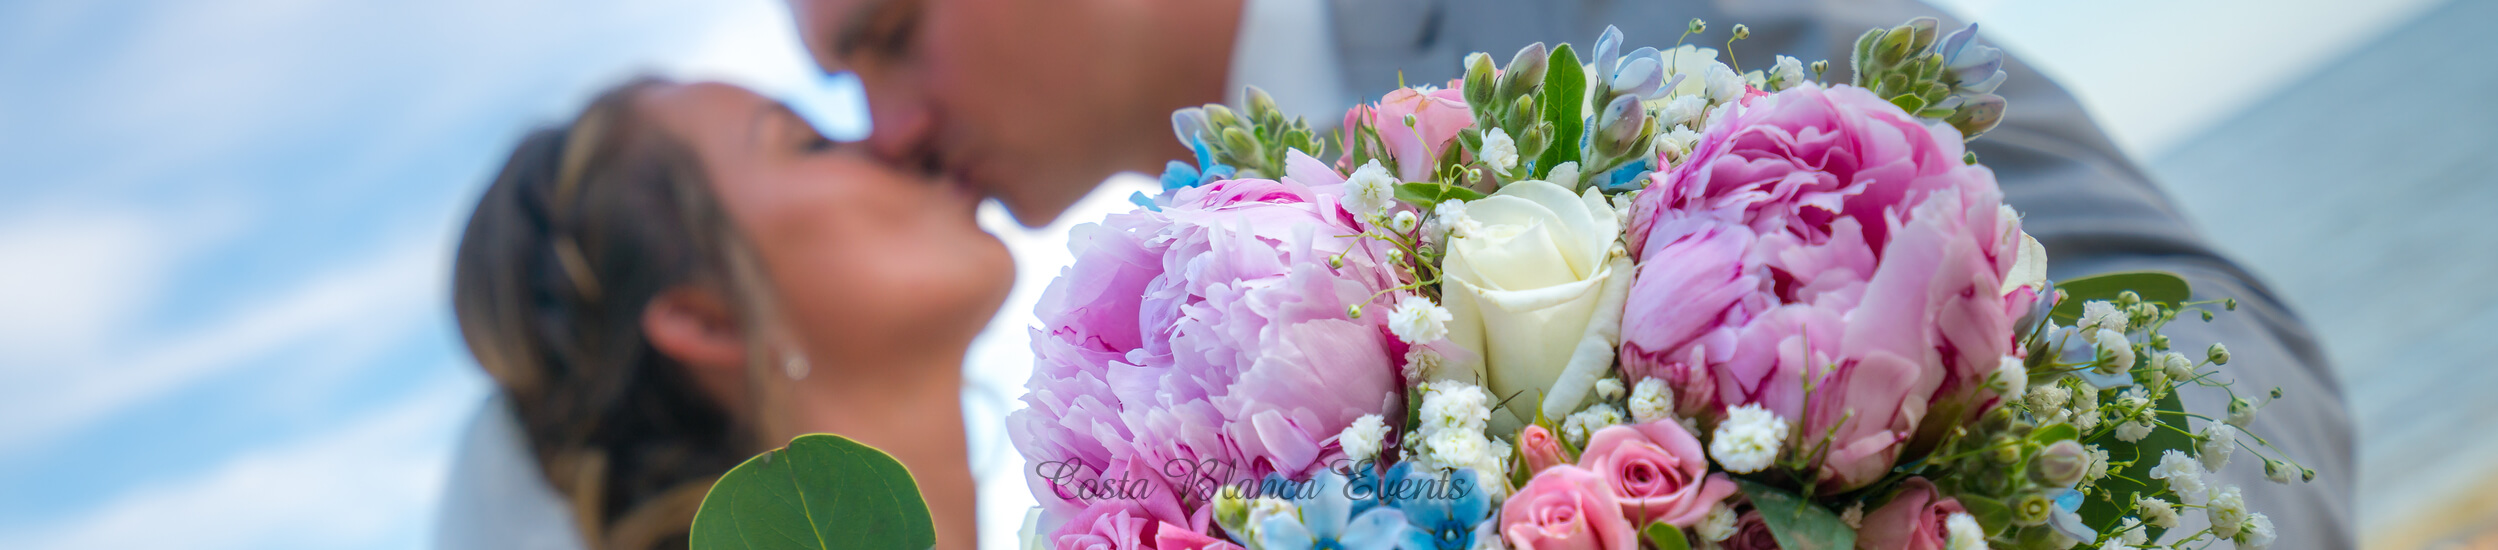 Wedding bouquet is always with the bride during the photoshoot